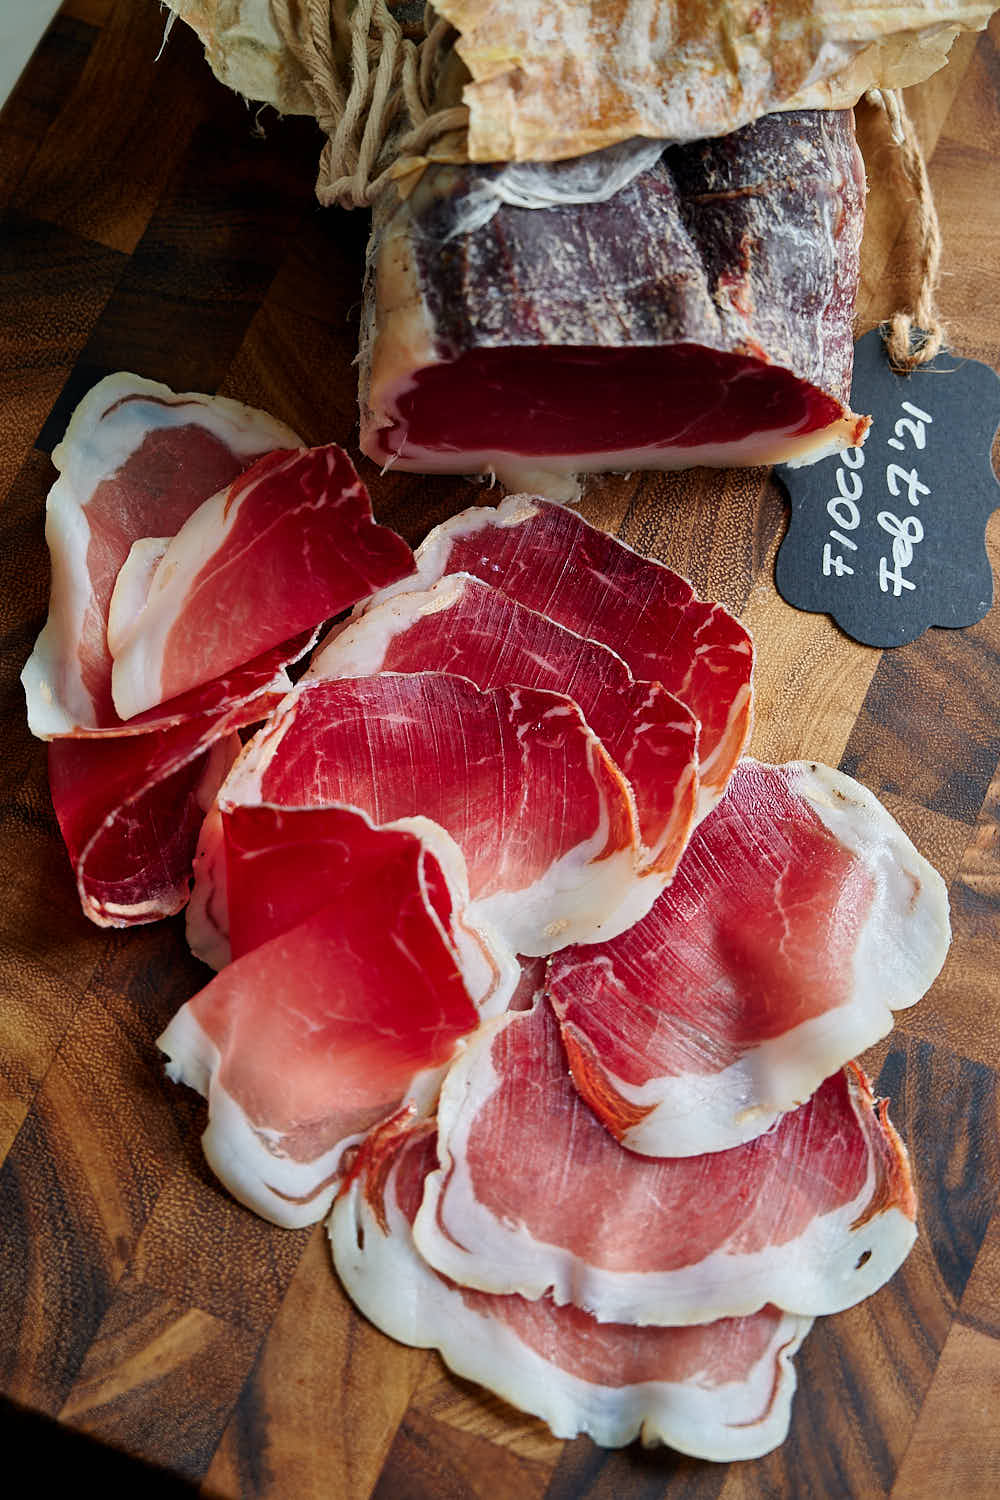 Fiocco - dry-cured ham made at home